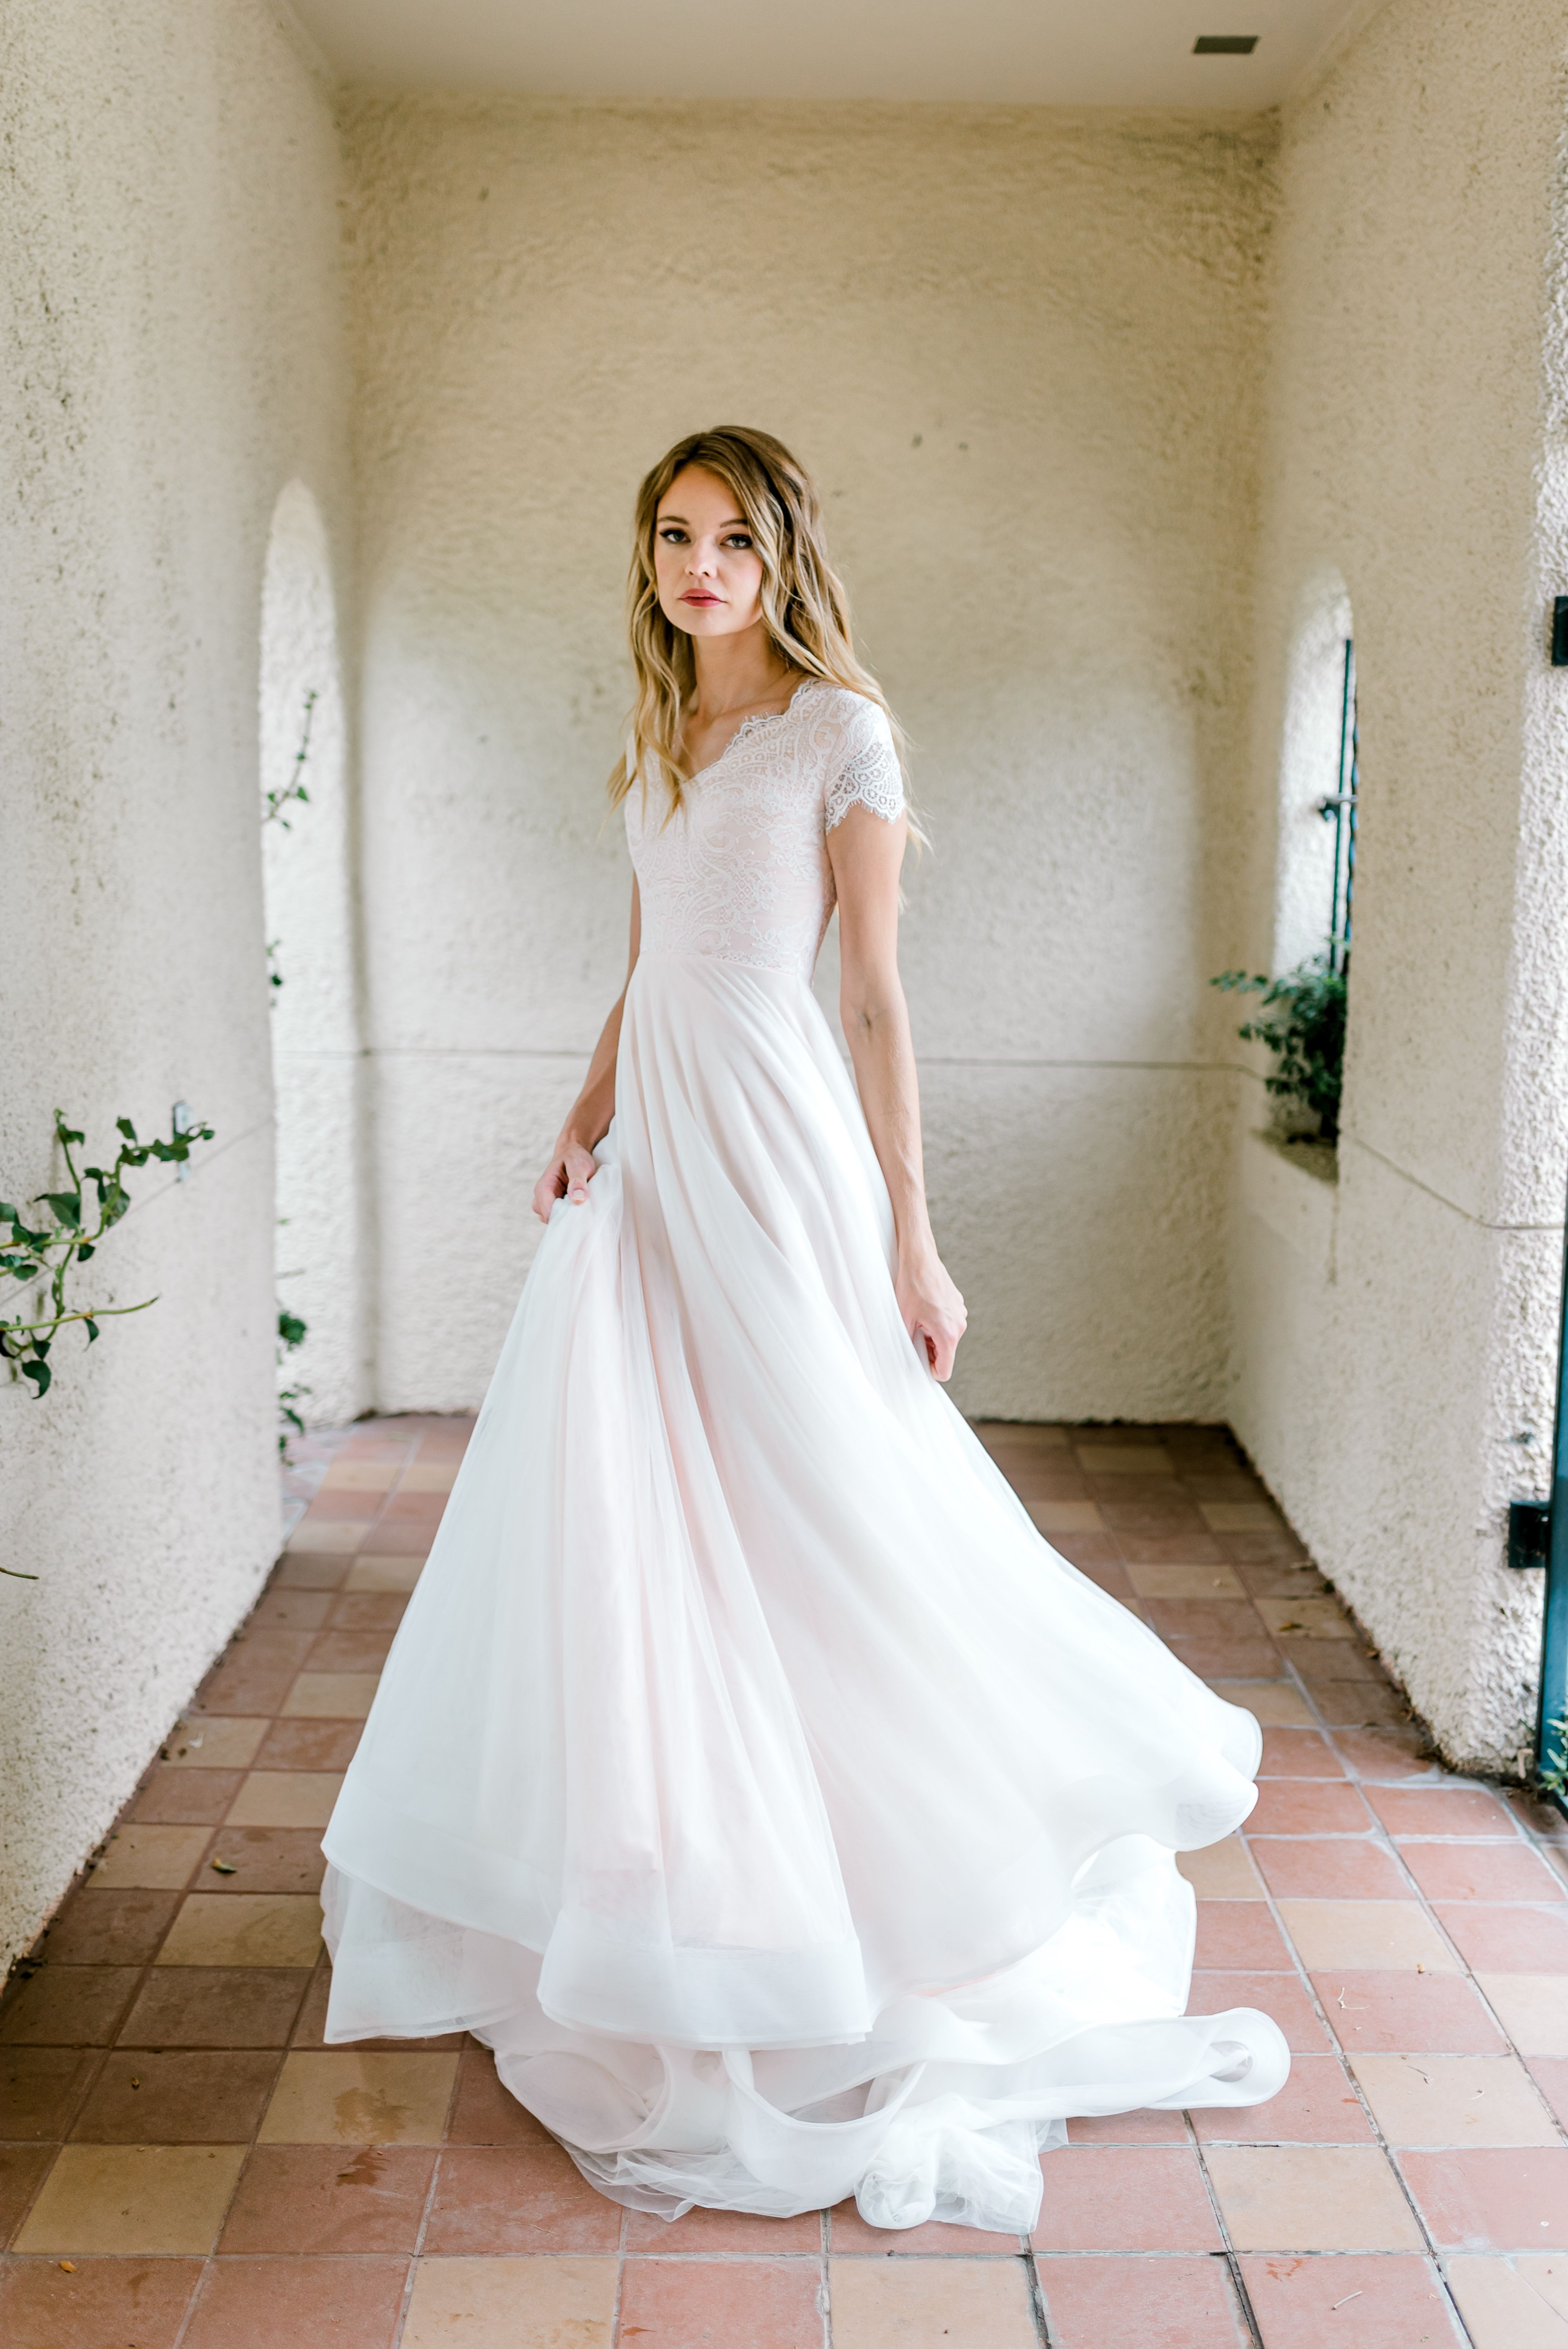 Whitney gown by Elizabeth Cooper Design Beautifully Dunn